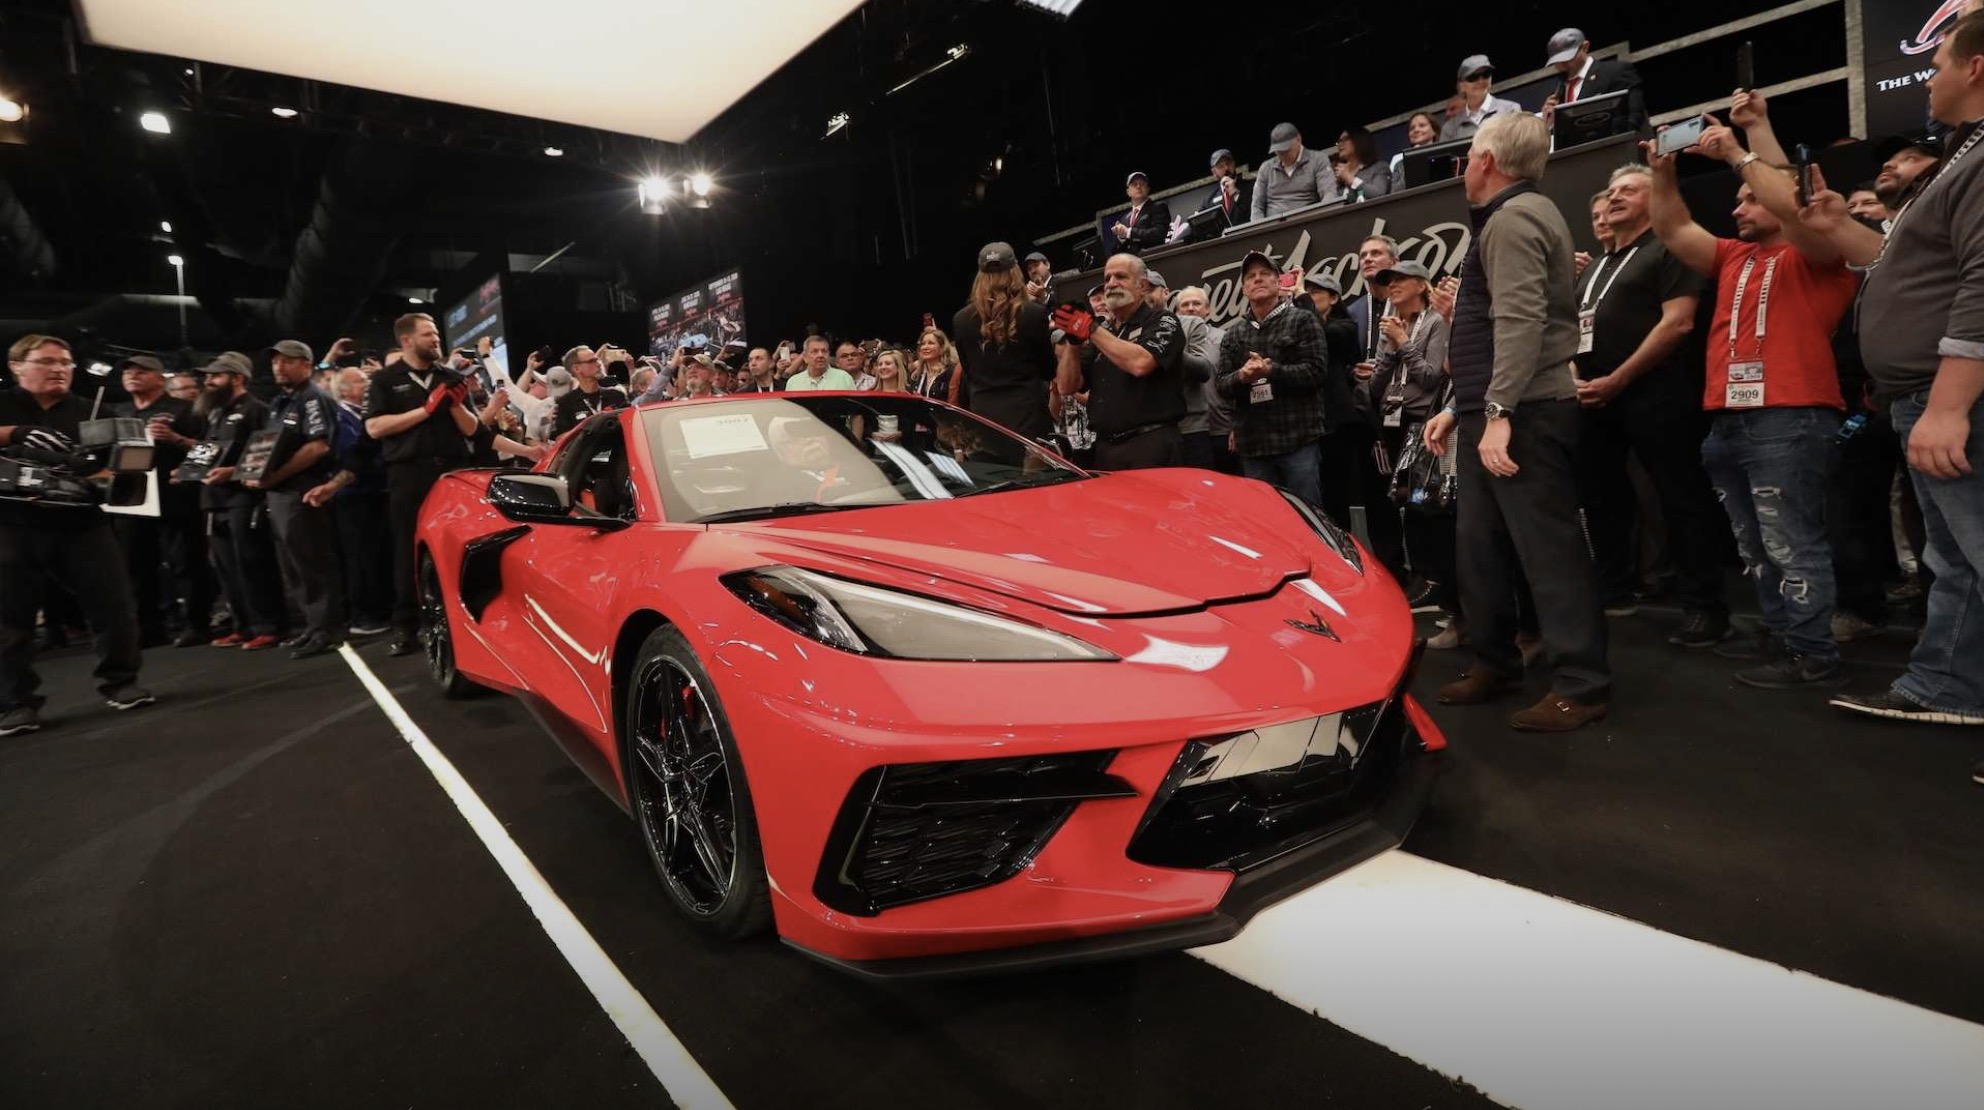 Venduta all'asta la Chevrolet Corvette Stingray C8 numero 001 per 3 mln di dollari